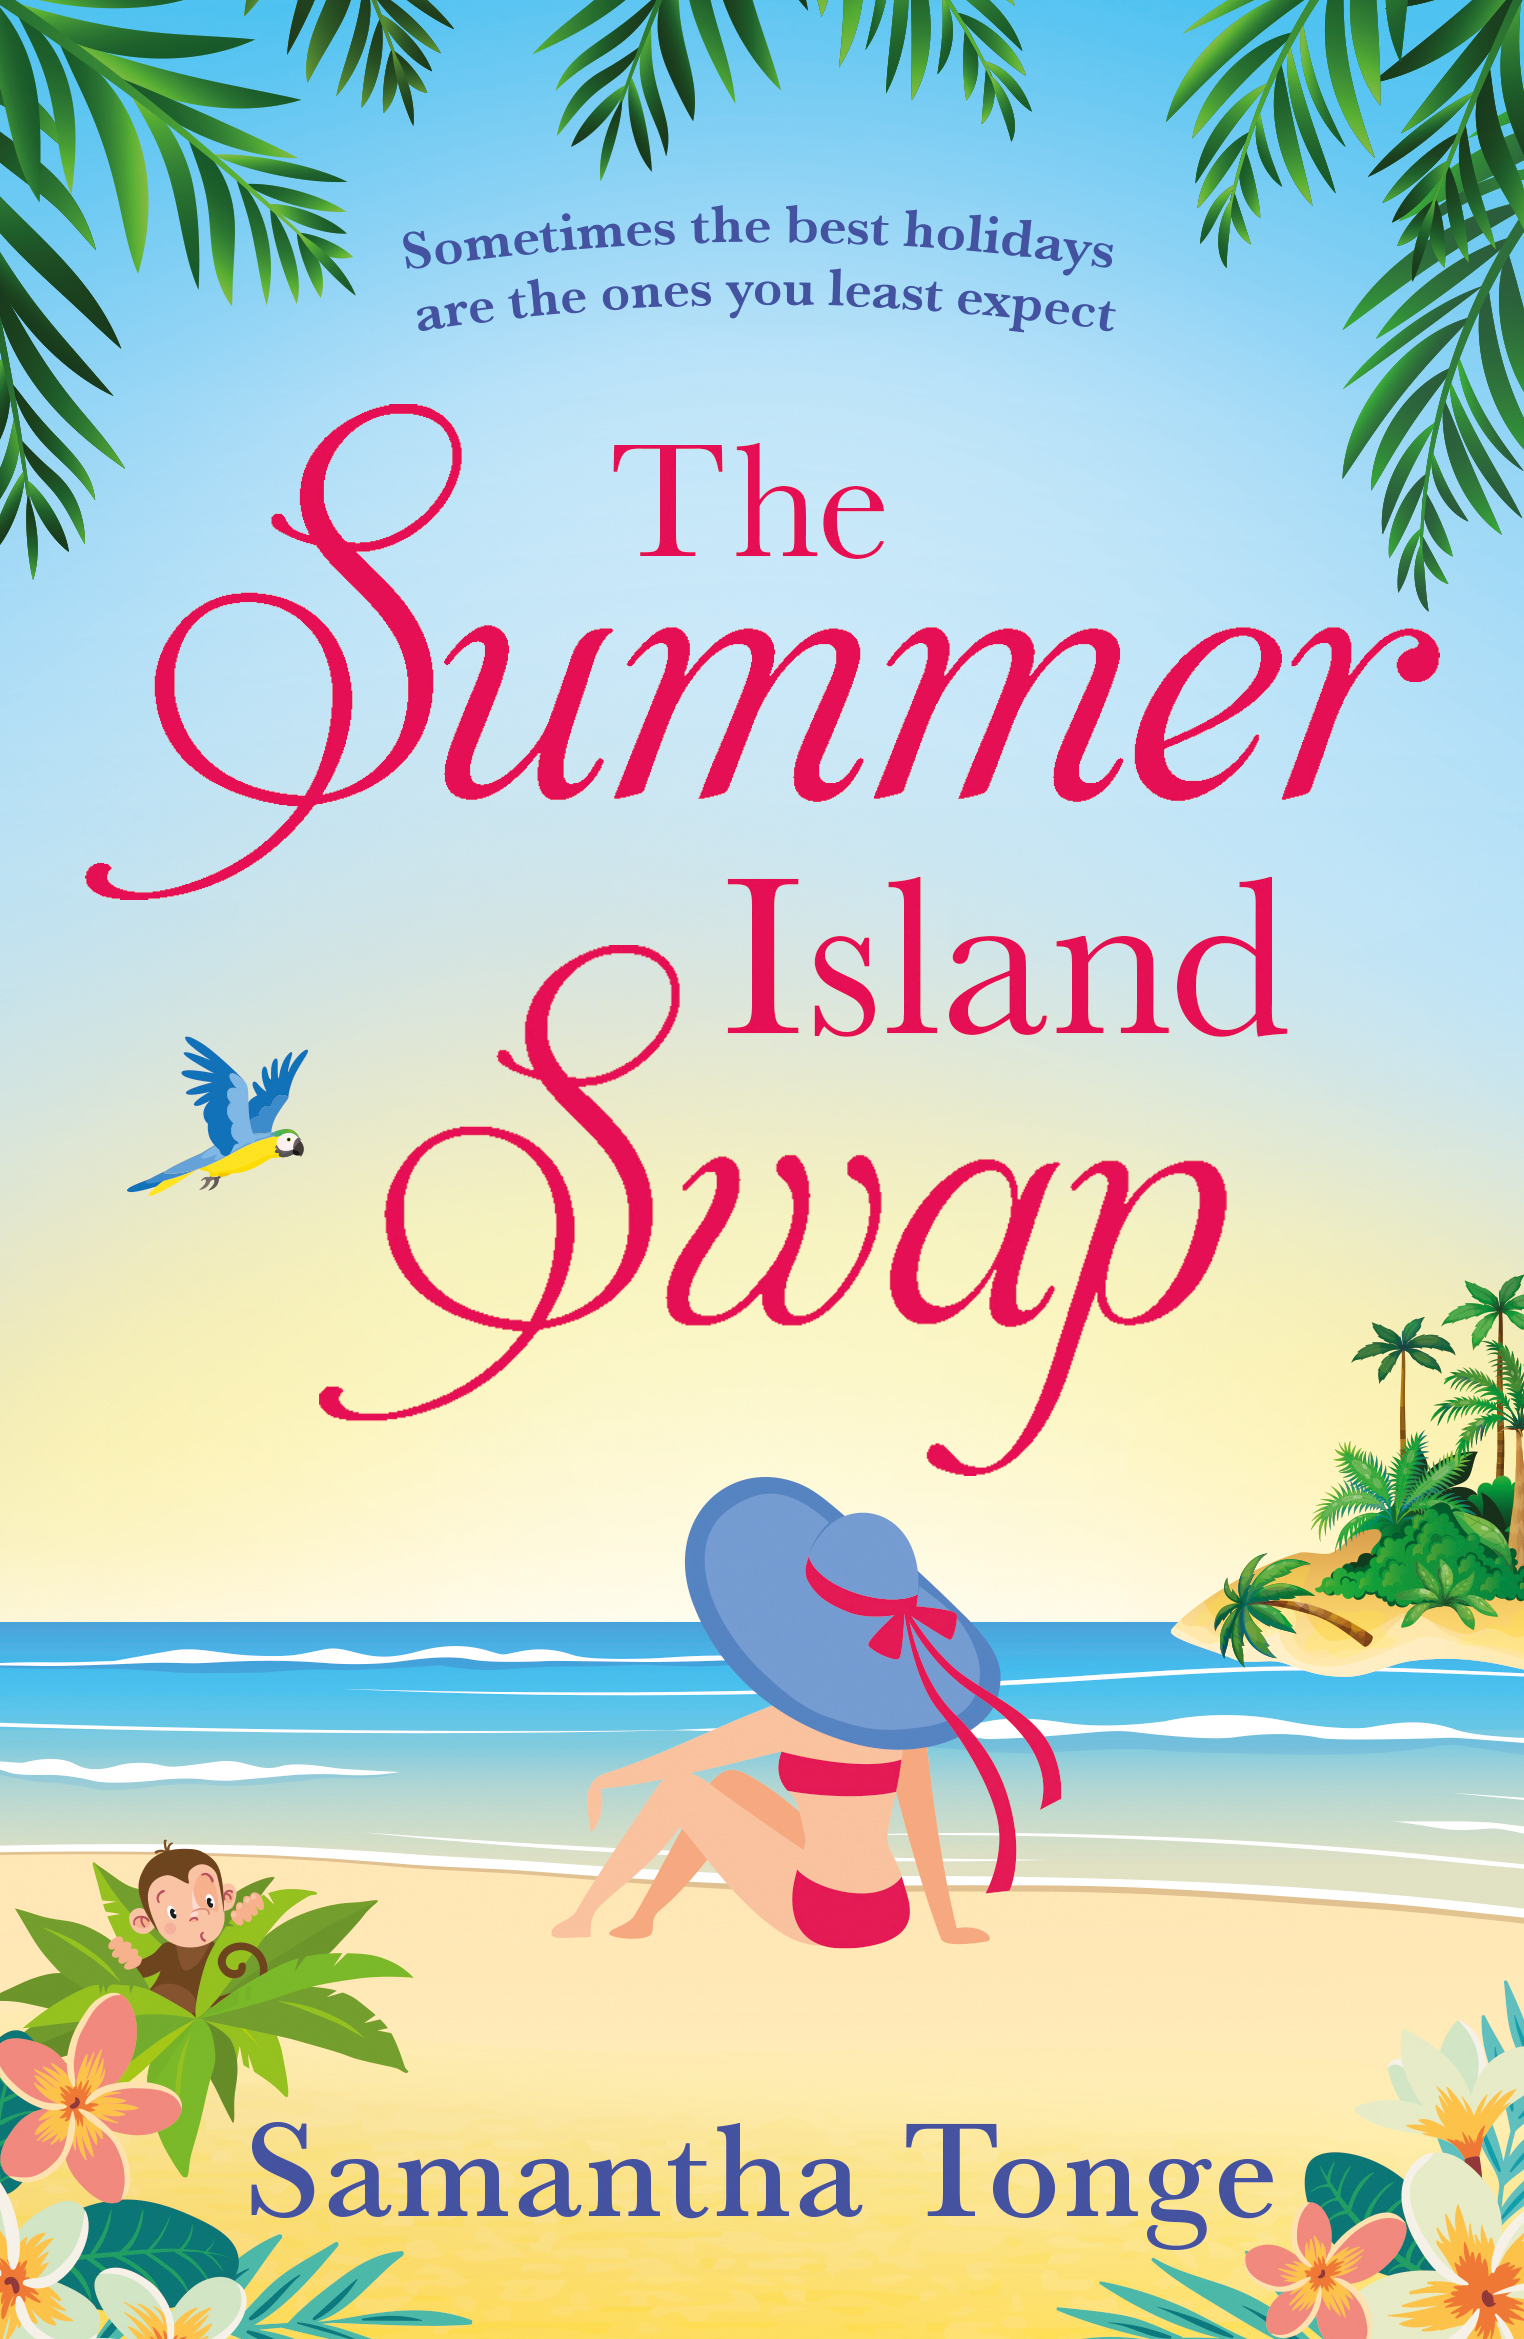 The Summer Island Swap - Samantha Tonge